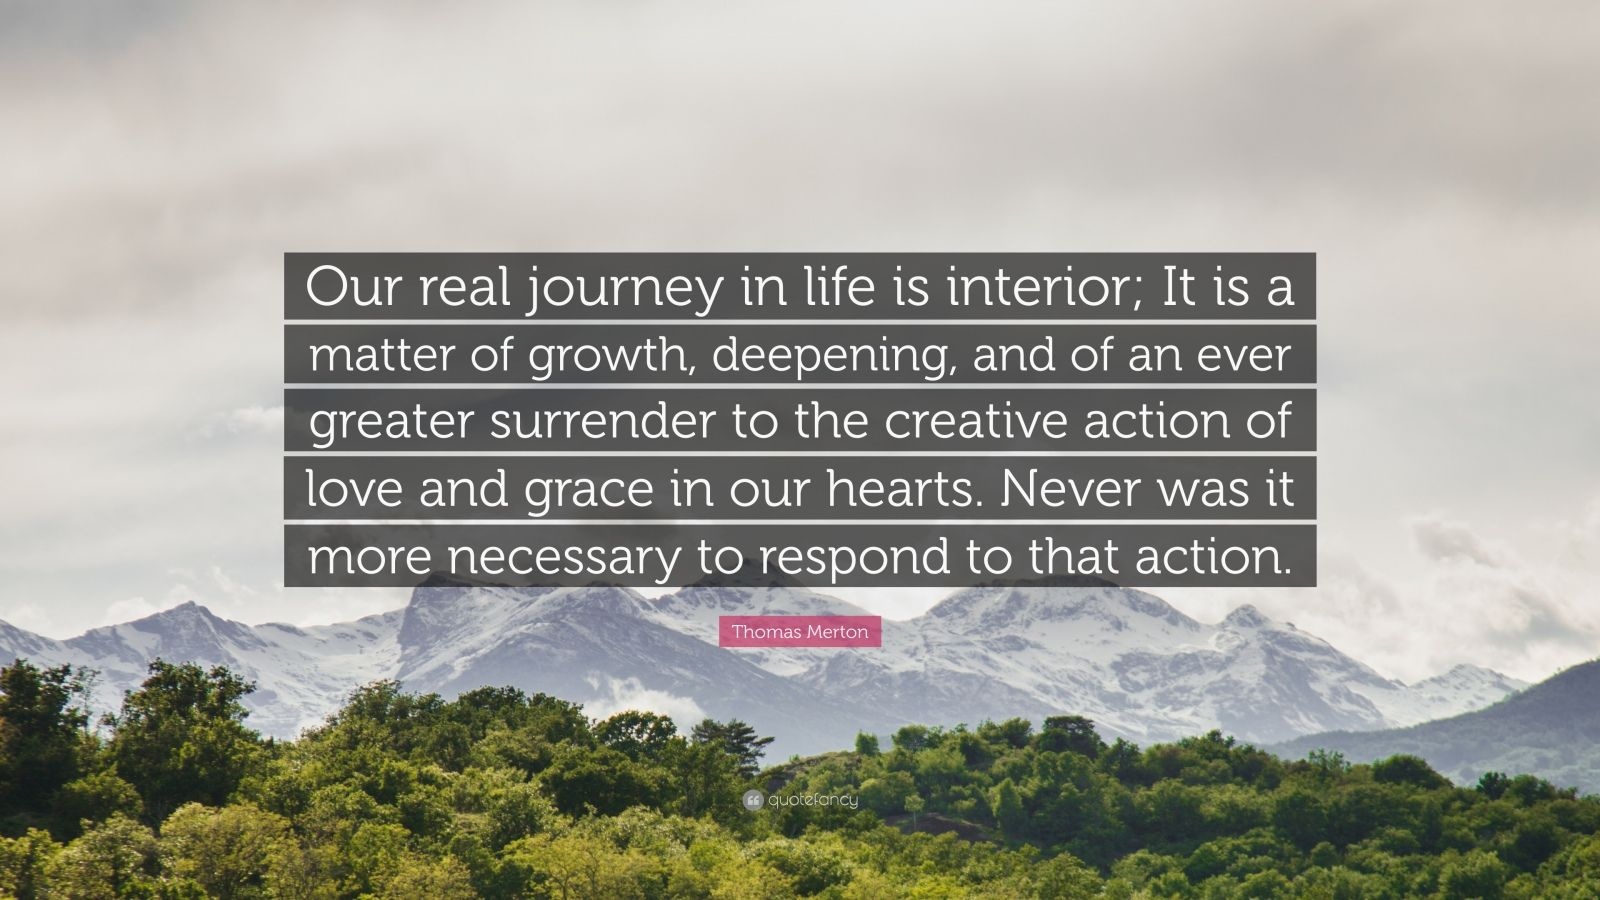 """Thomas Merton Quote: """"Our real journey in life is interior; It is a matter of growth, deepening, and of an ever greater surrender to the creative action of love and grace in our hearts. Never was it more necessary to respond to that action."""""""